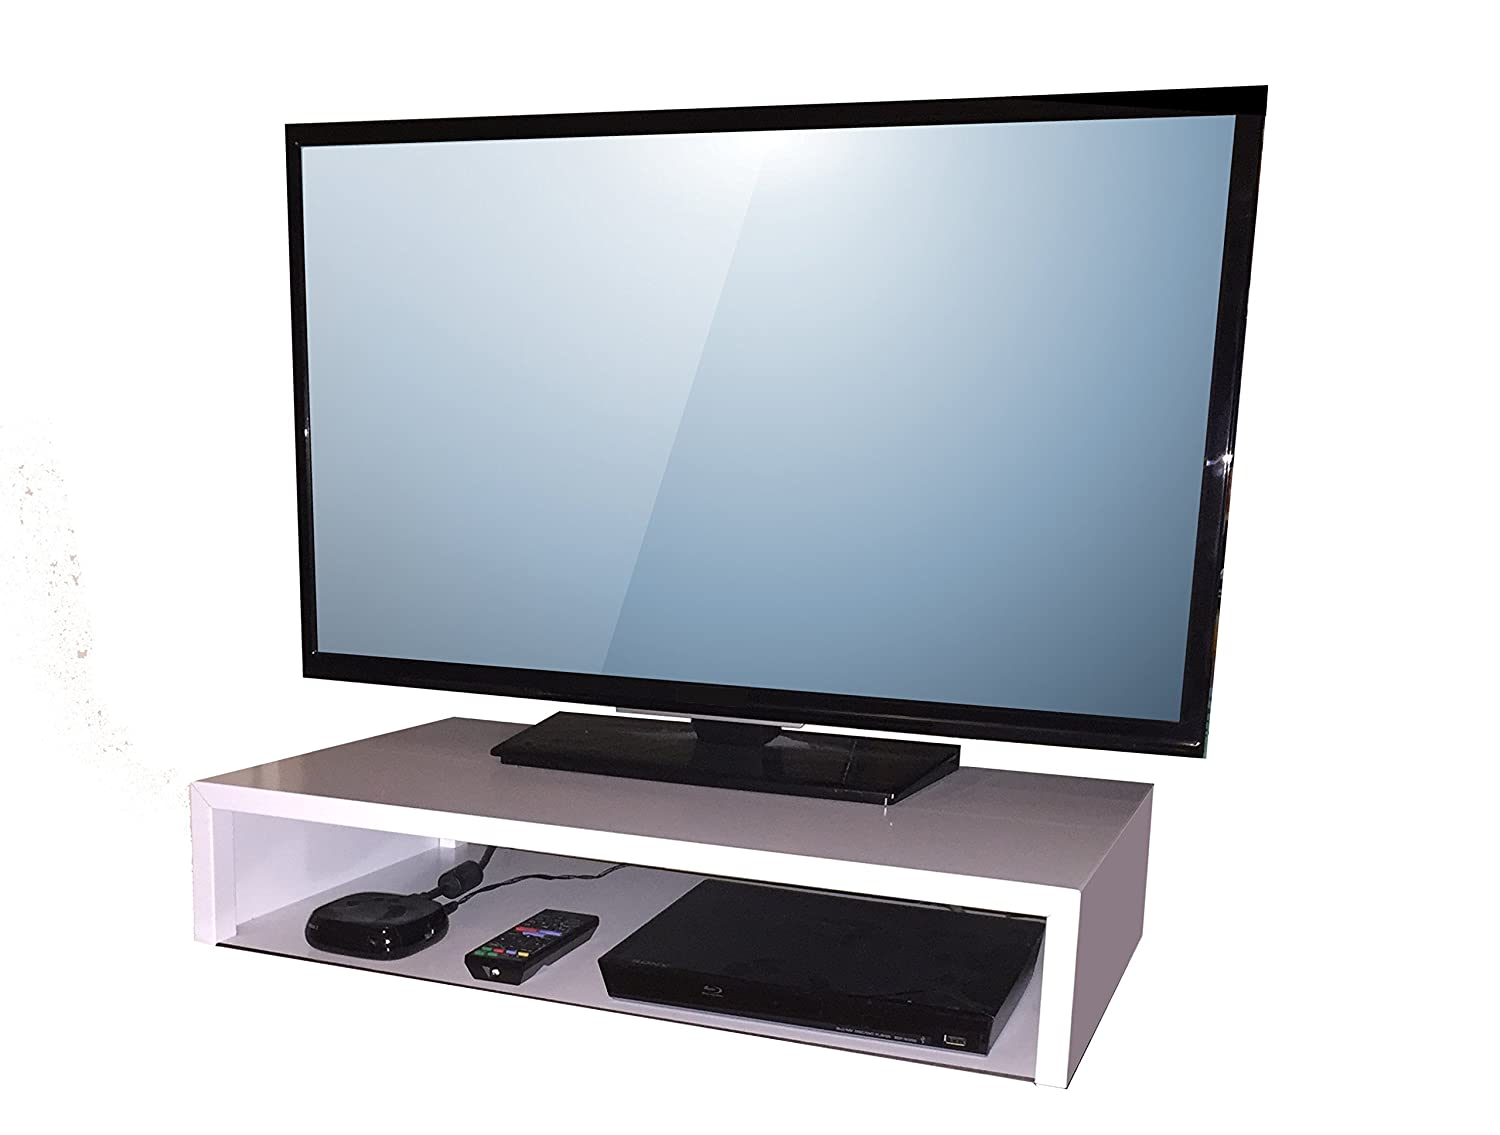 SoCalVS Tabletop TV Stand 25 W x 14 D x 5 H White RIZERvue Up to 32 Diagonal No Assembly Required